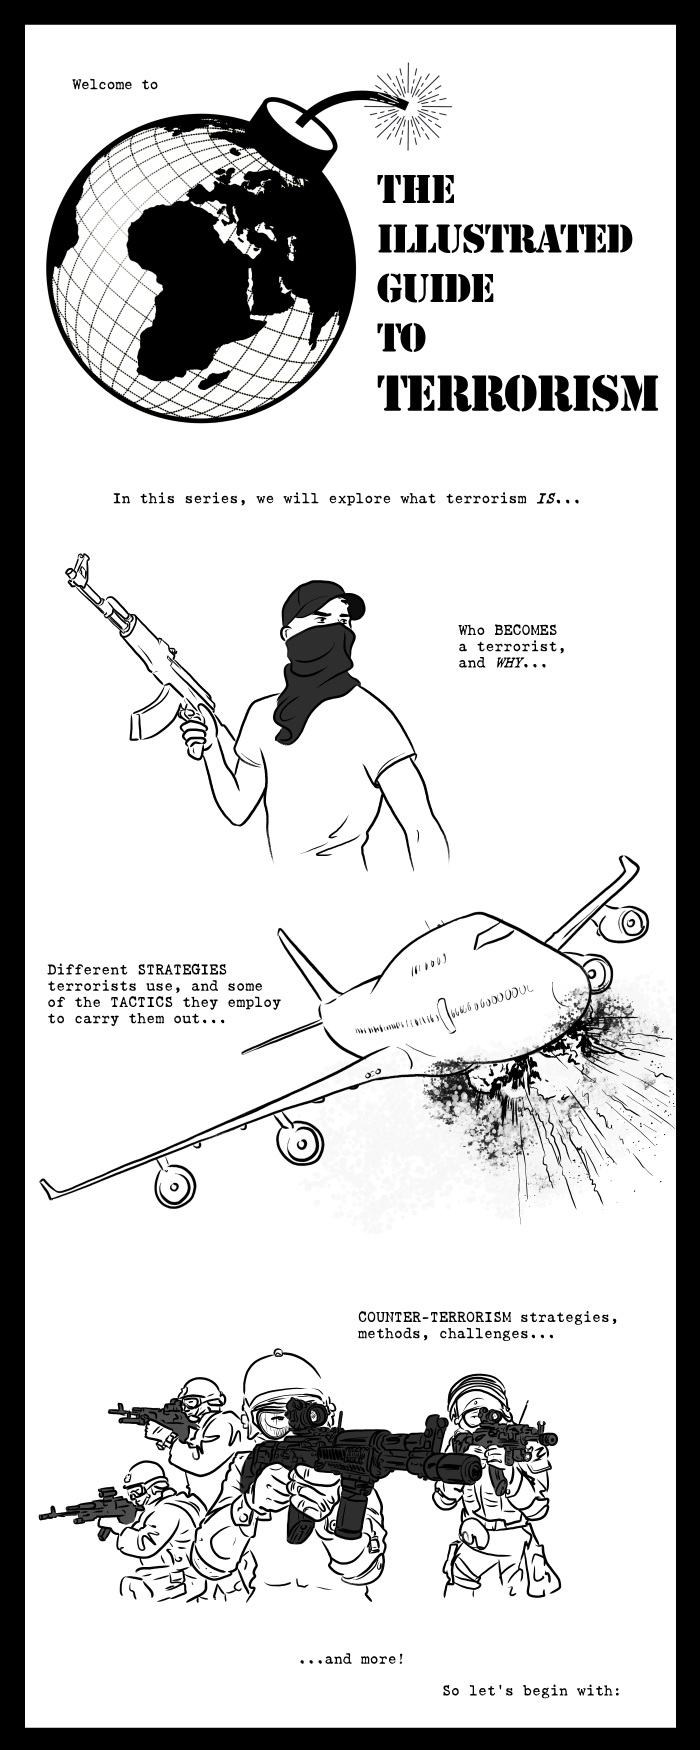 The Illustrated Guide to Terrorism